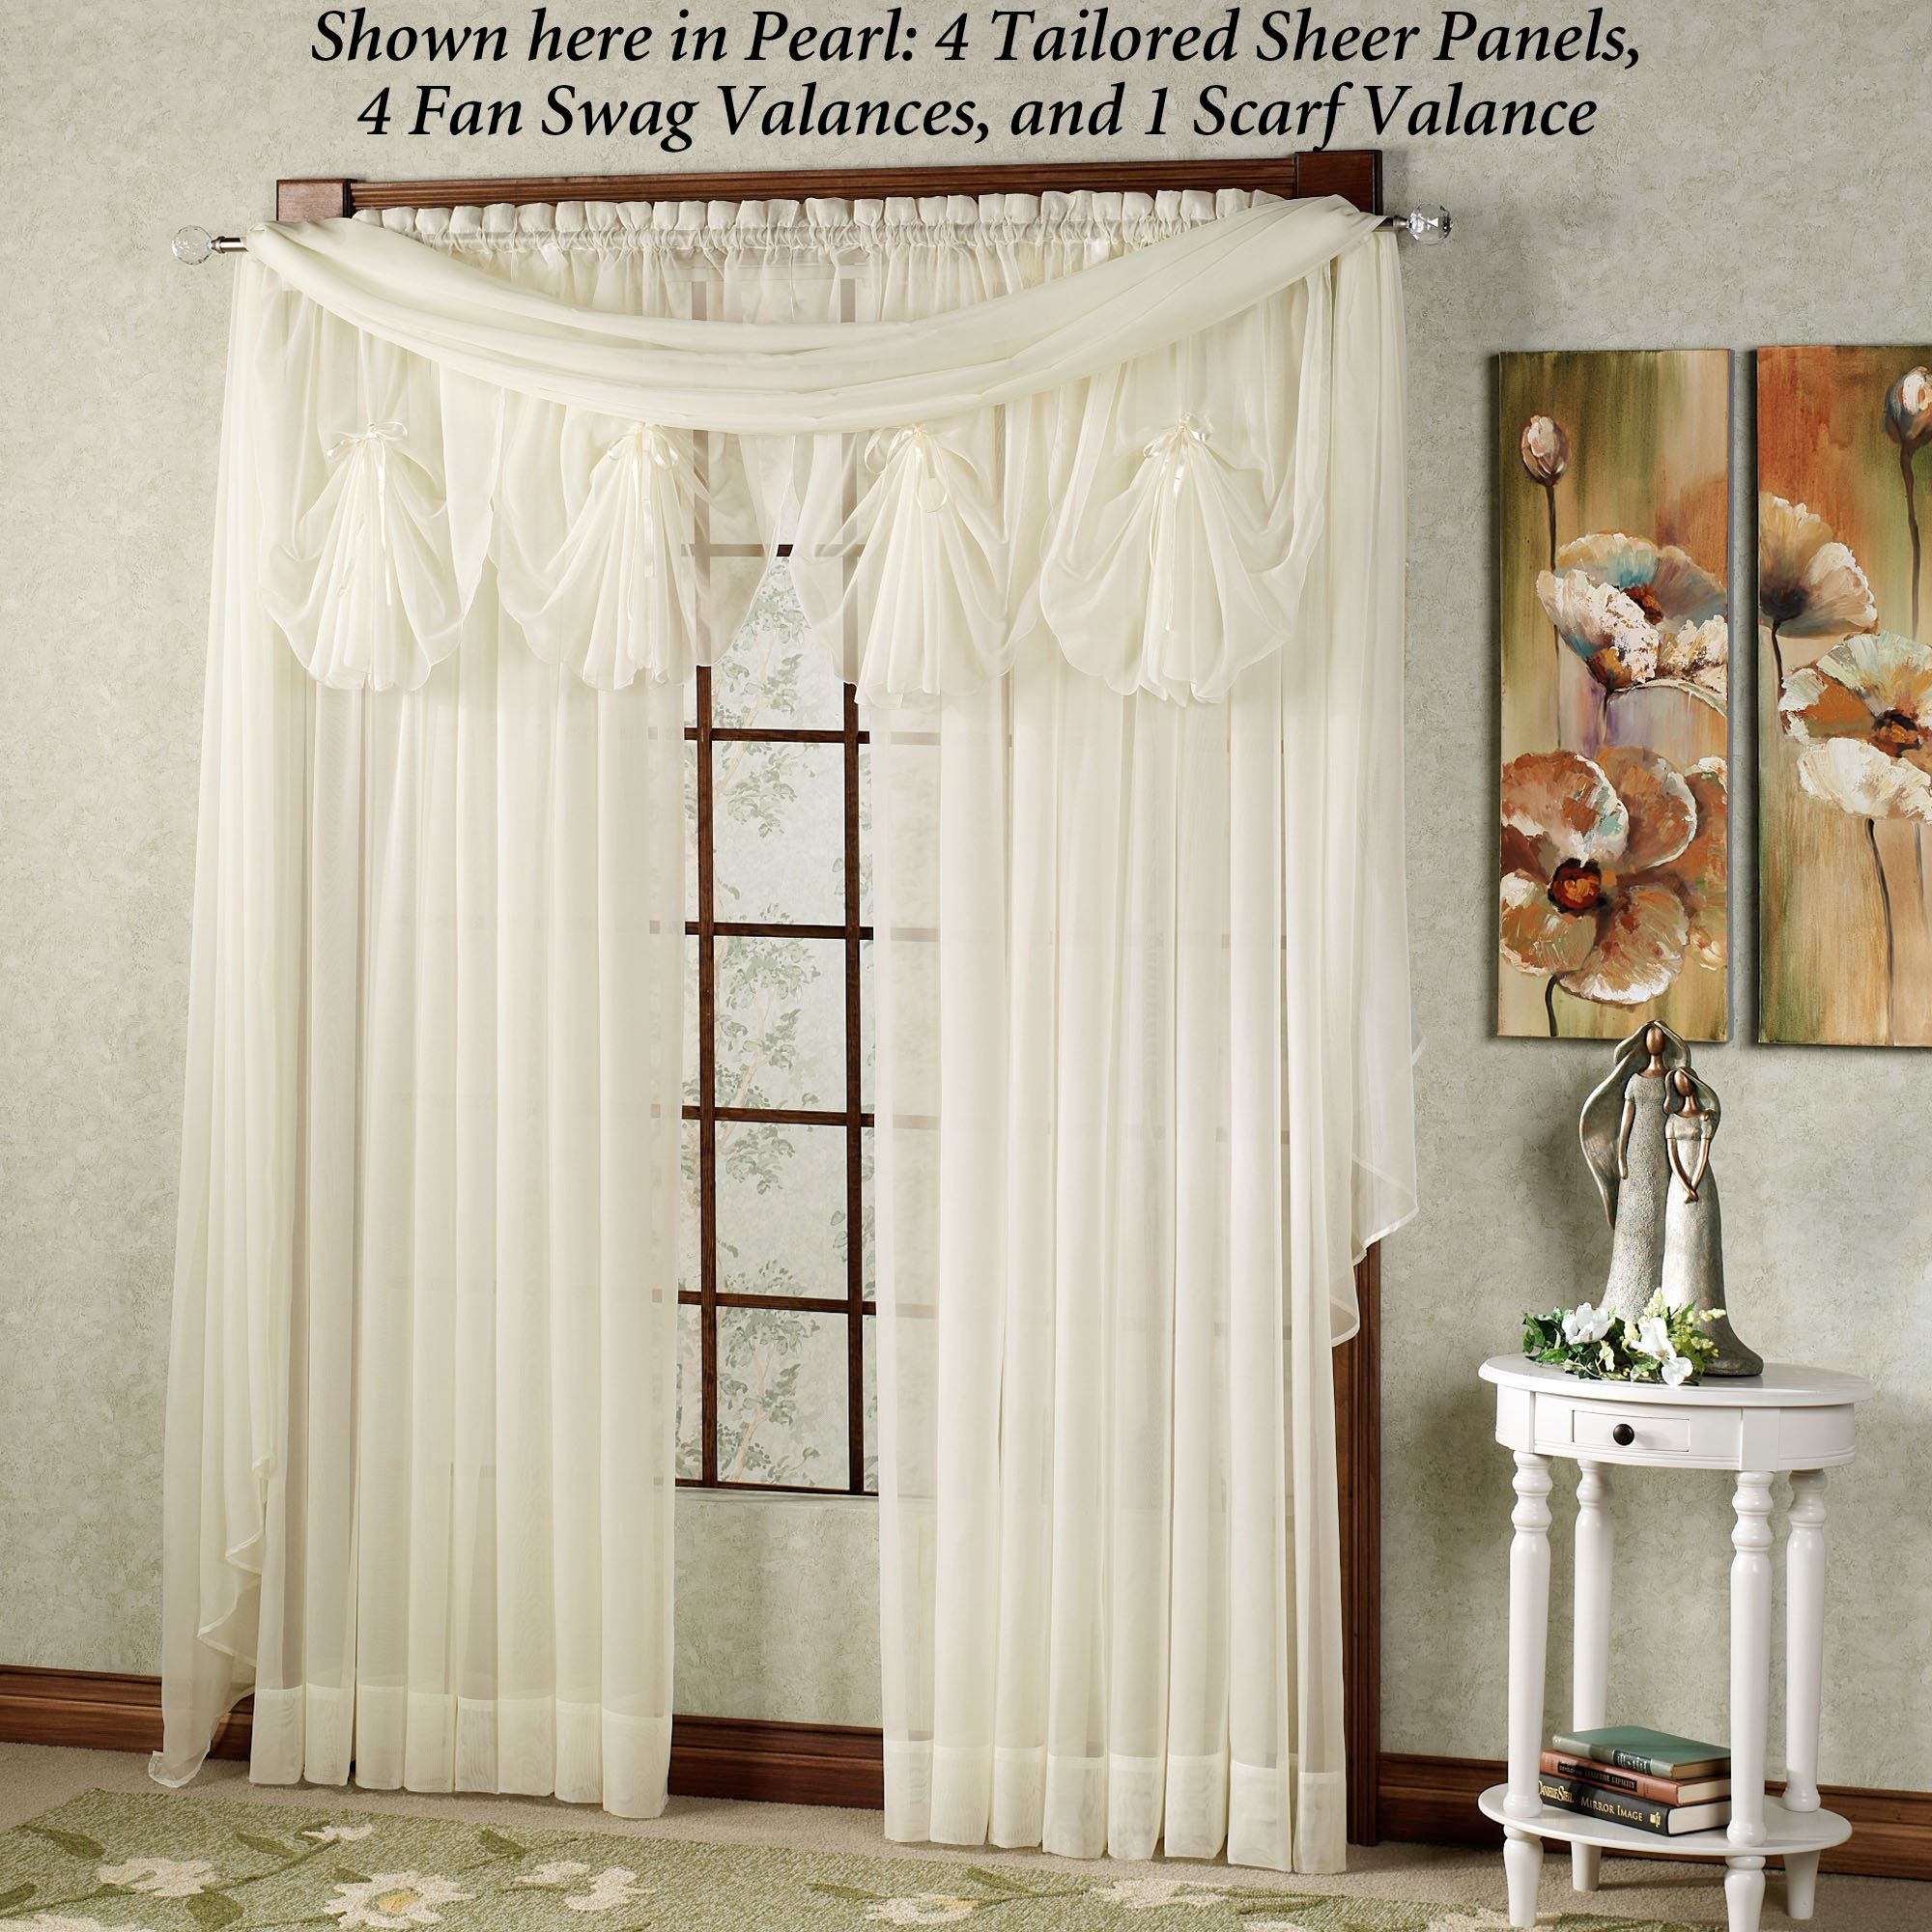 concept mintainssheer literarywondrous ideas full of green panels jcpenney and curtains pictures valance greenains olive scarf floral sheer leaf design bedroom curtain valances size panelsdark